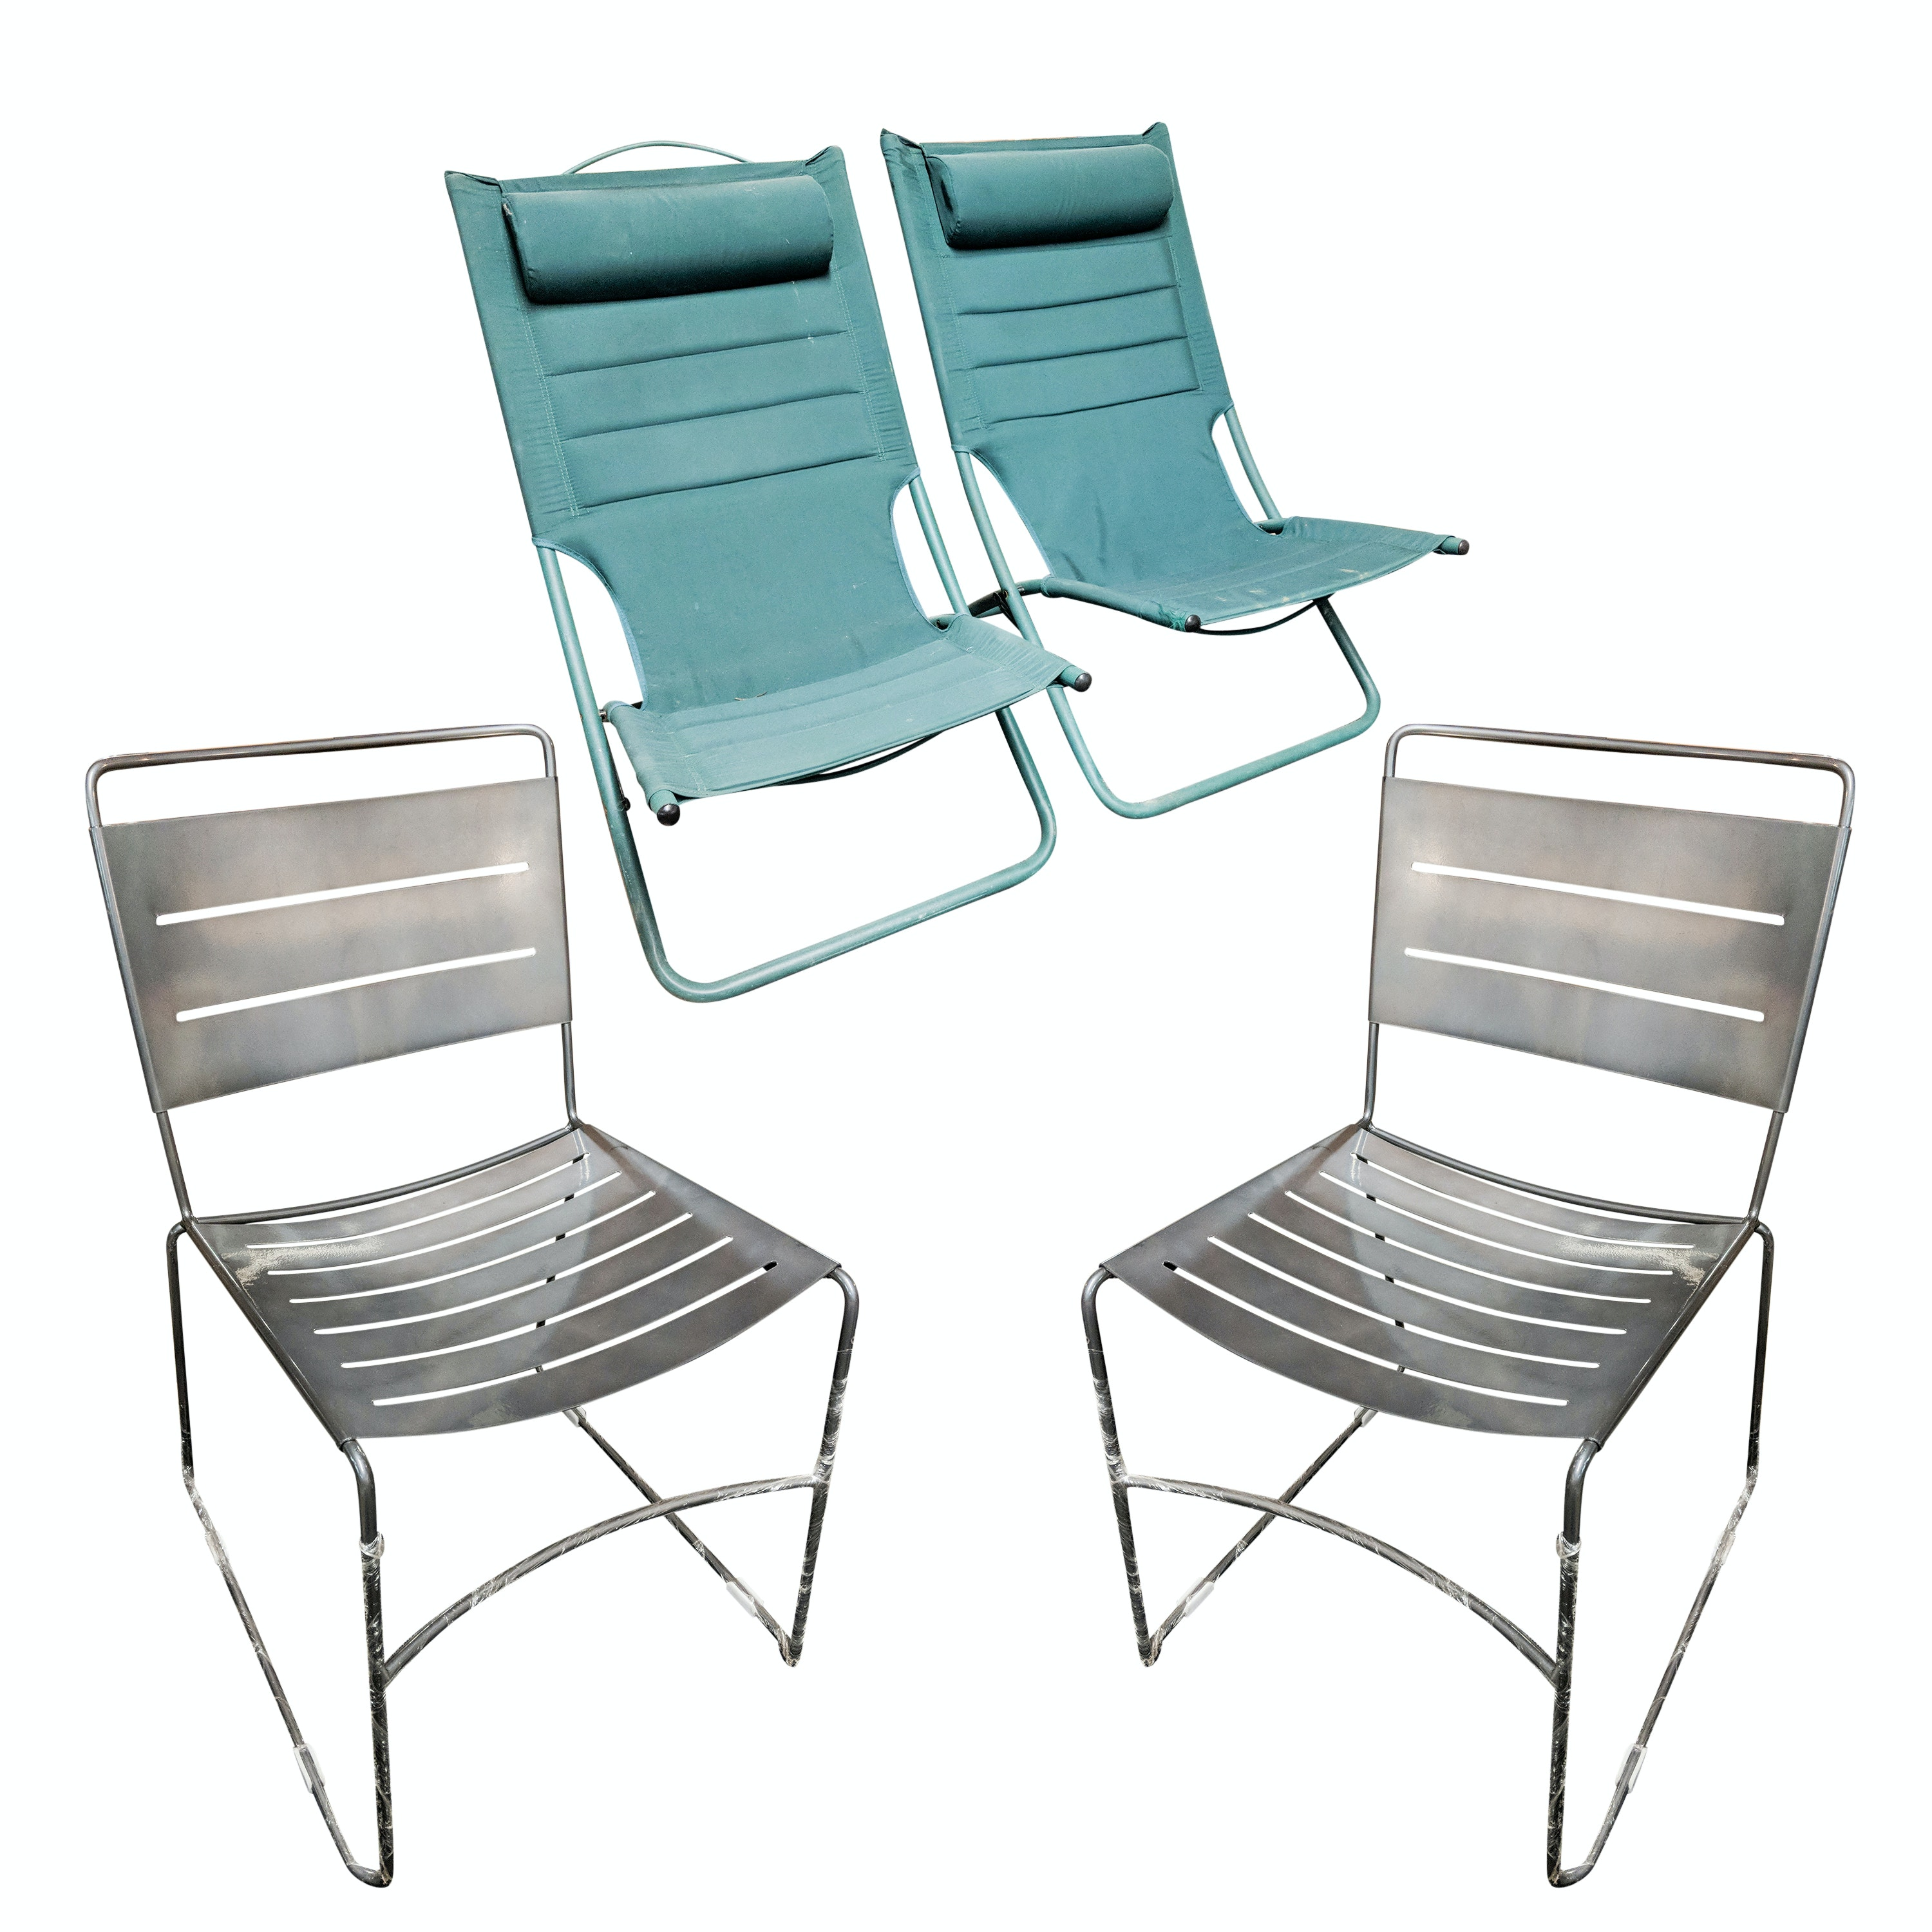 Four Metal Stacking Chairs in Original Packaging & Two Fabric Lounge Chairs